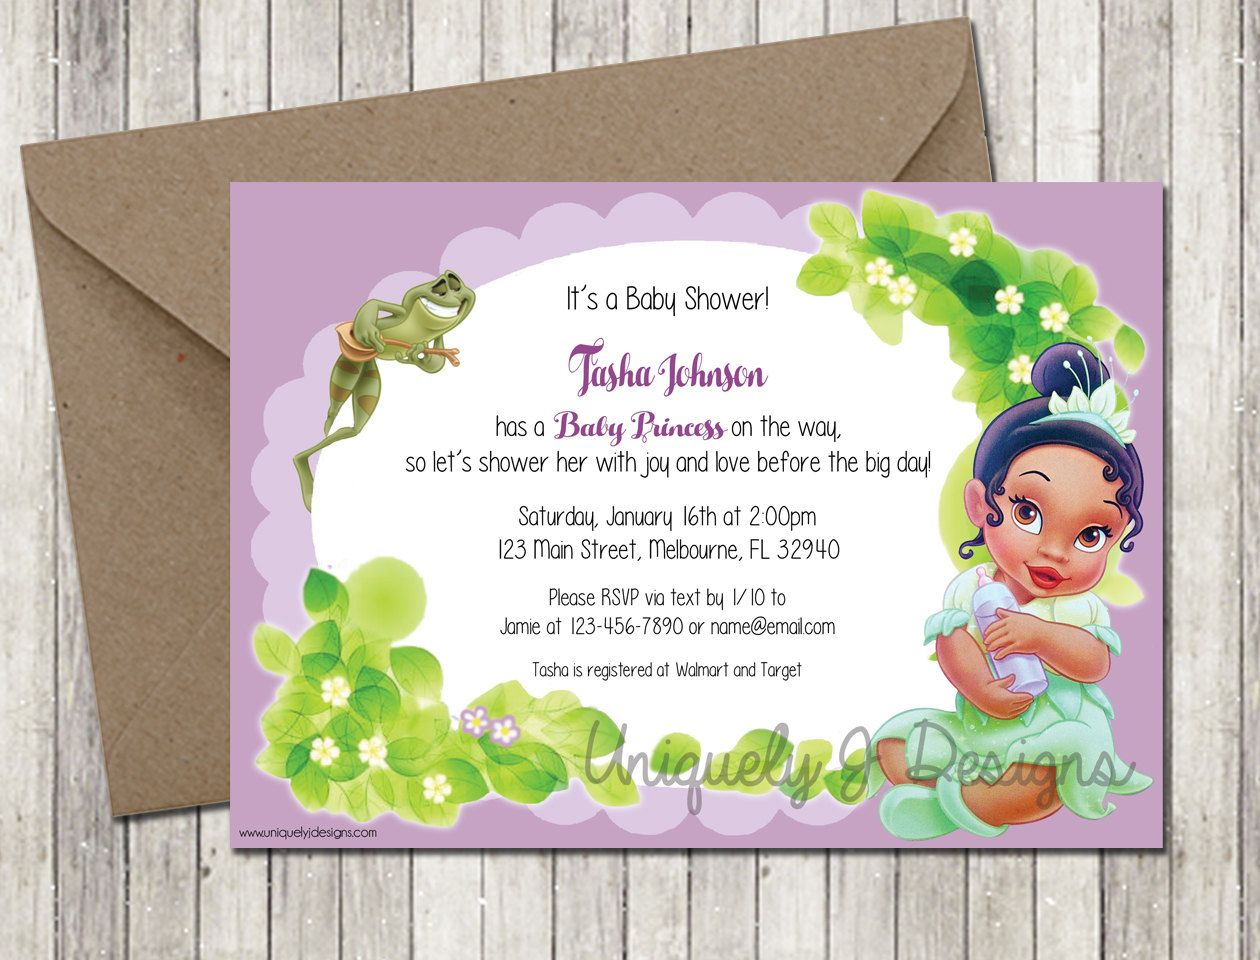 Princess tiana baby shower invitation printable baby shower princess tiana baby shower invitation printable baby shower invitation diy filmwisefo